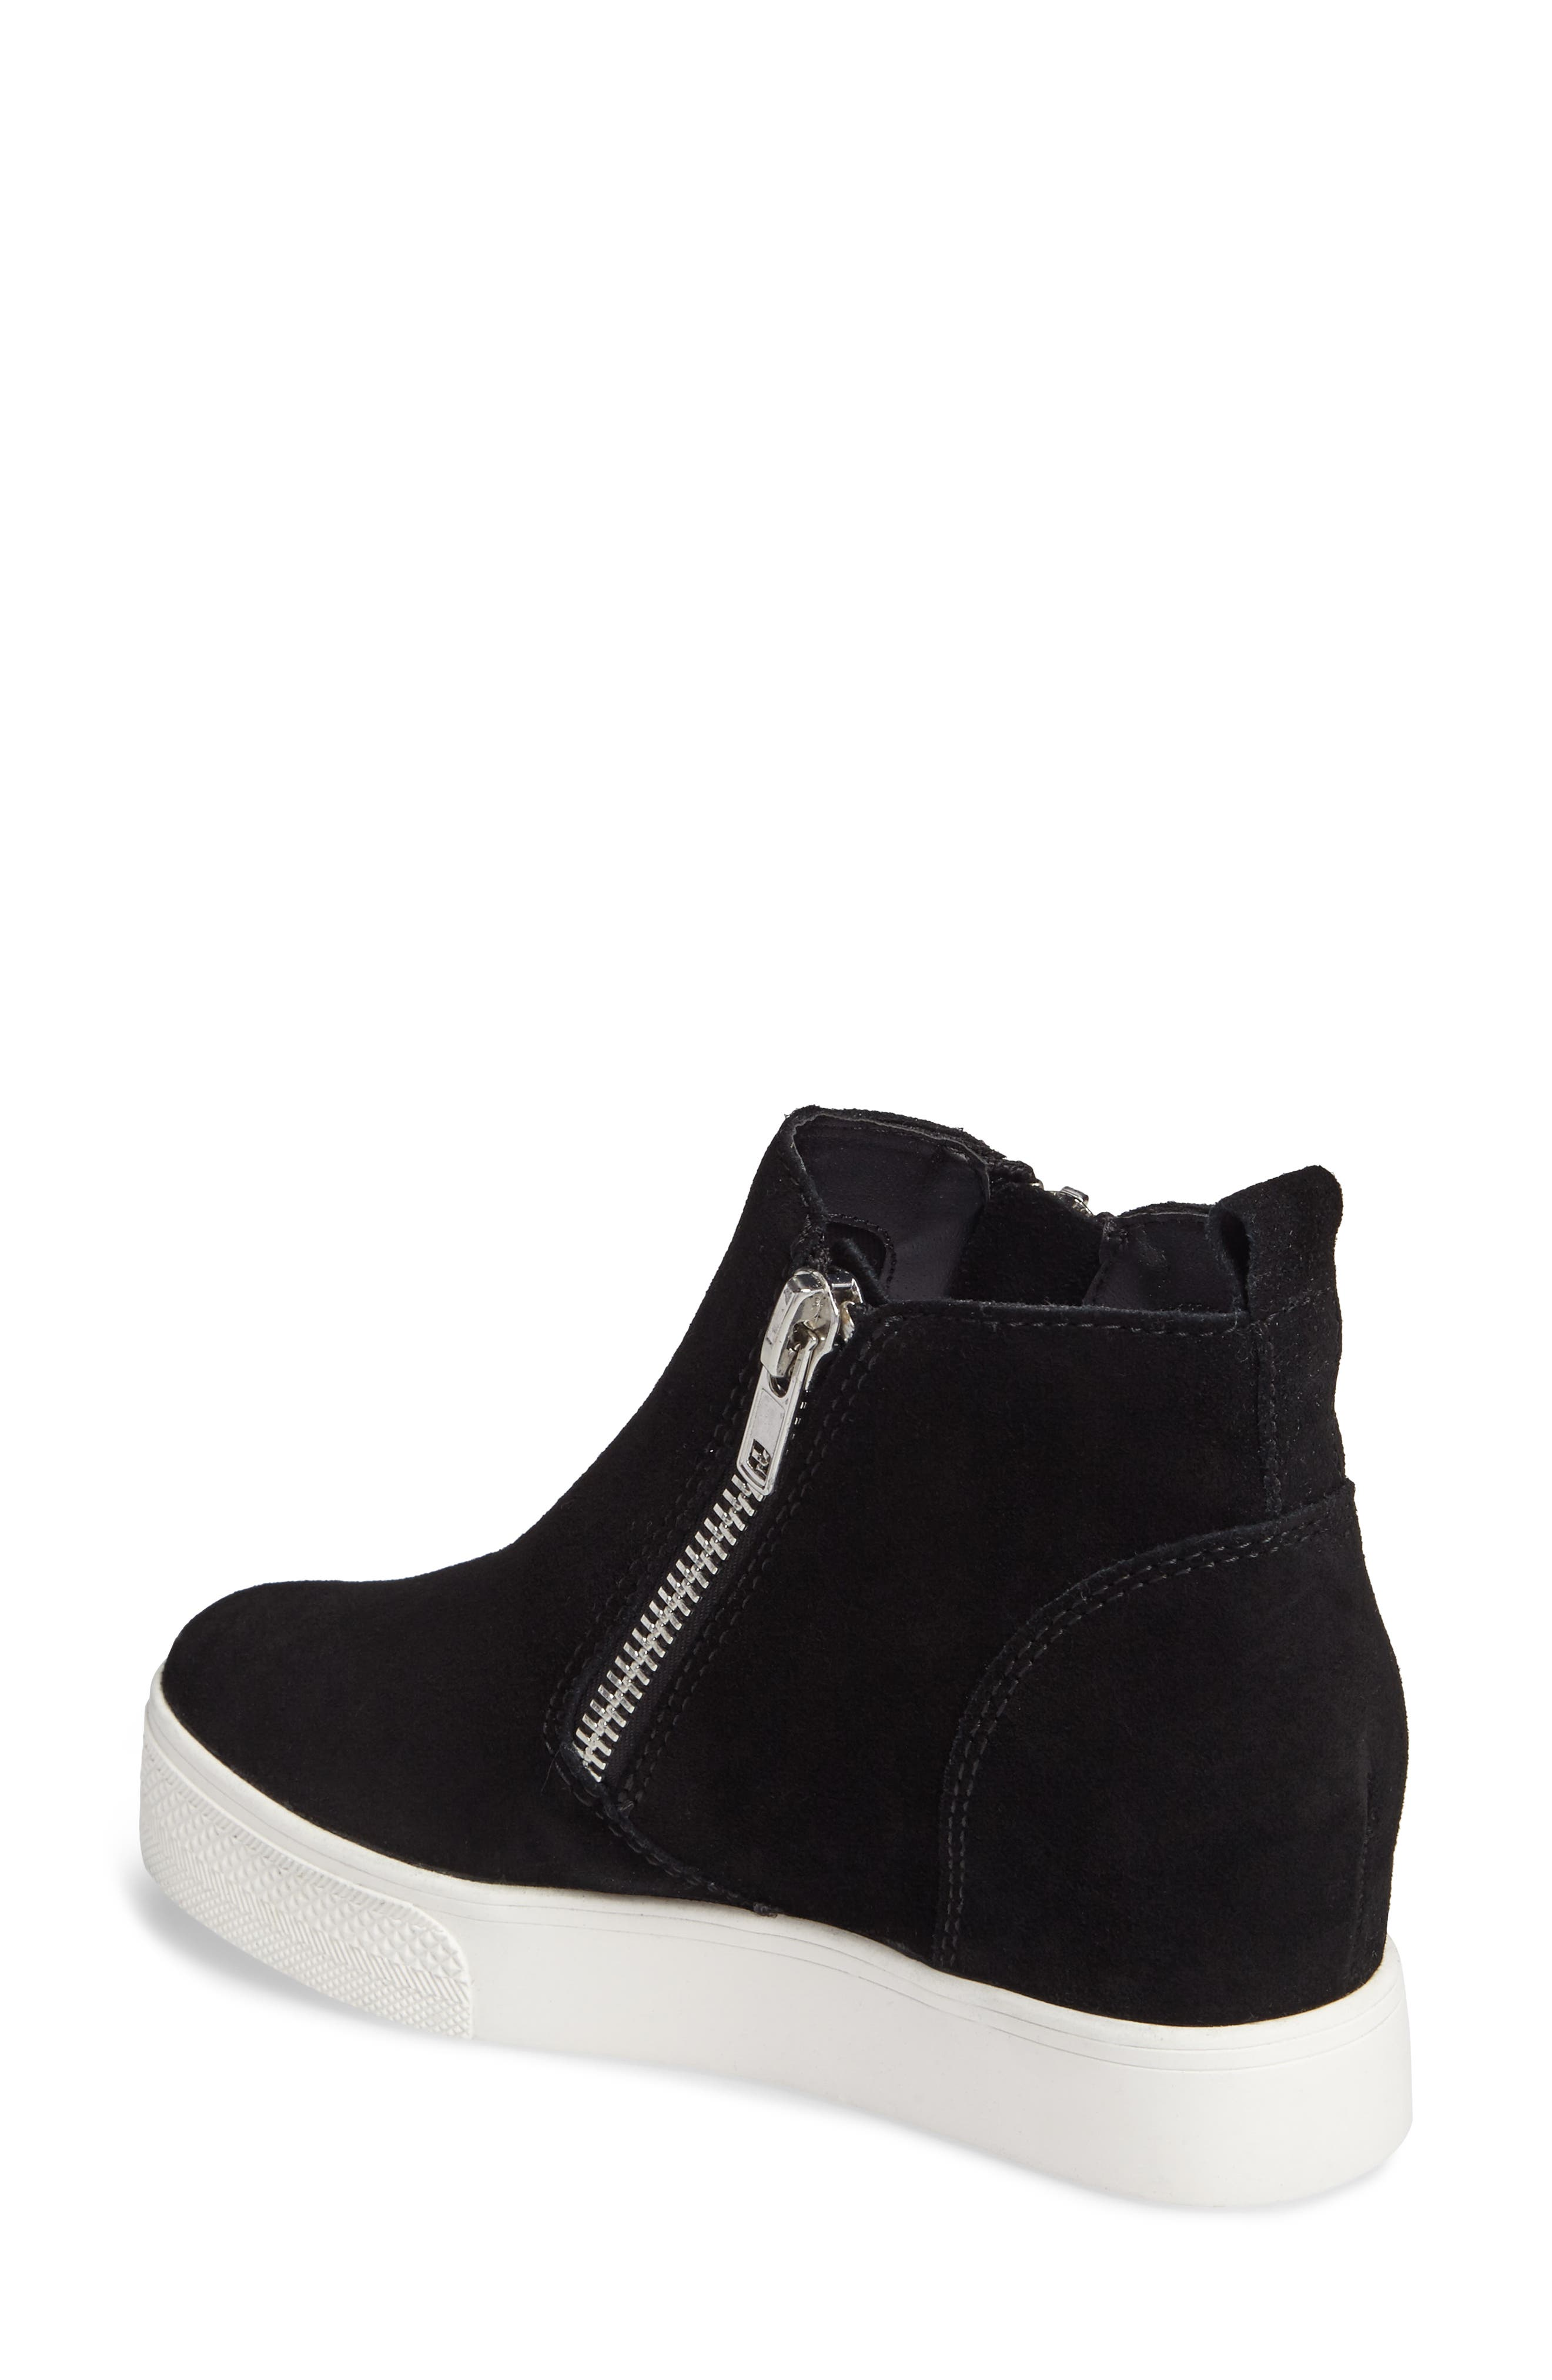 Wedgie High Top Platform Sneaker,                             Alternate thumbnail 2, color,                             BLACK SUEDE